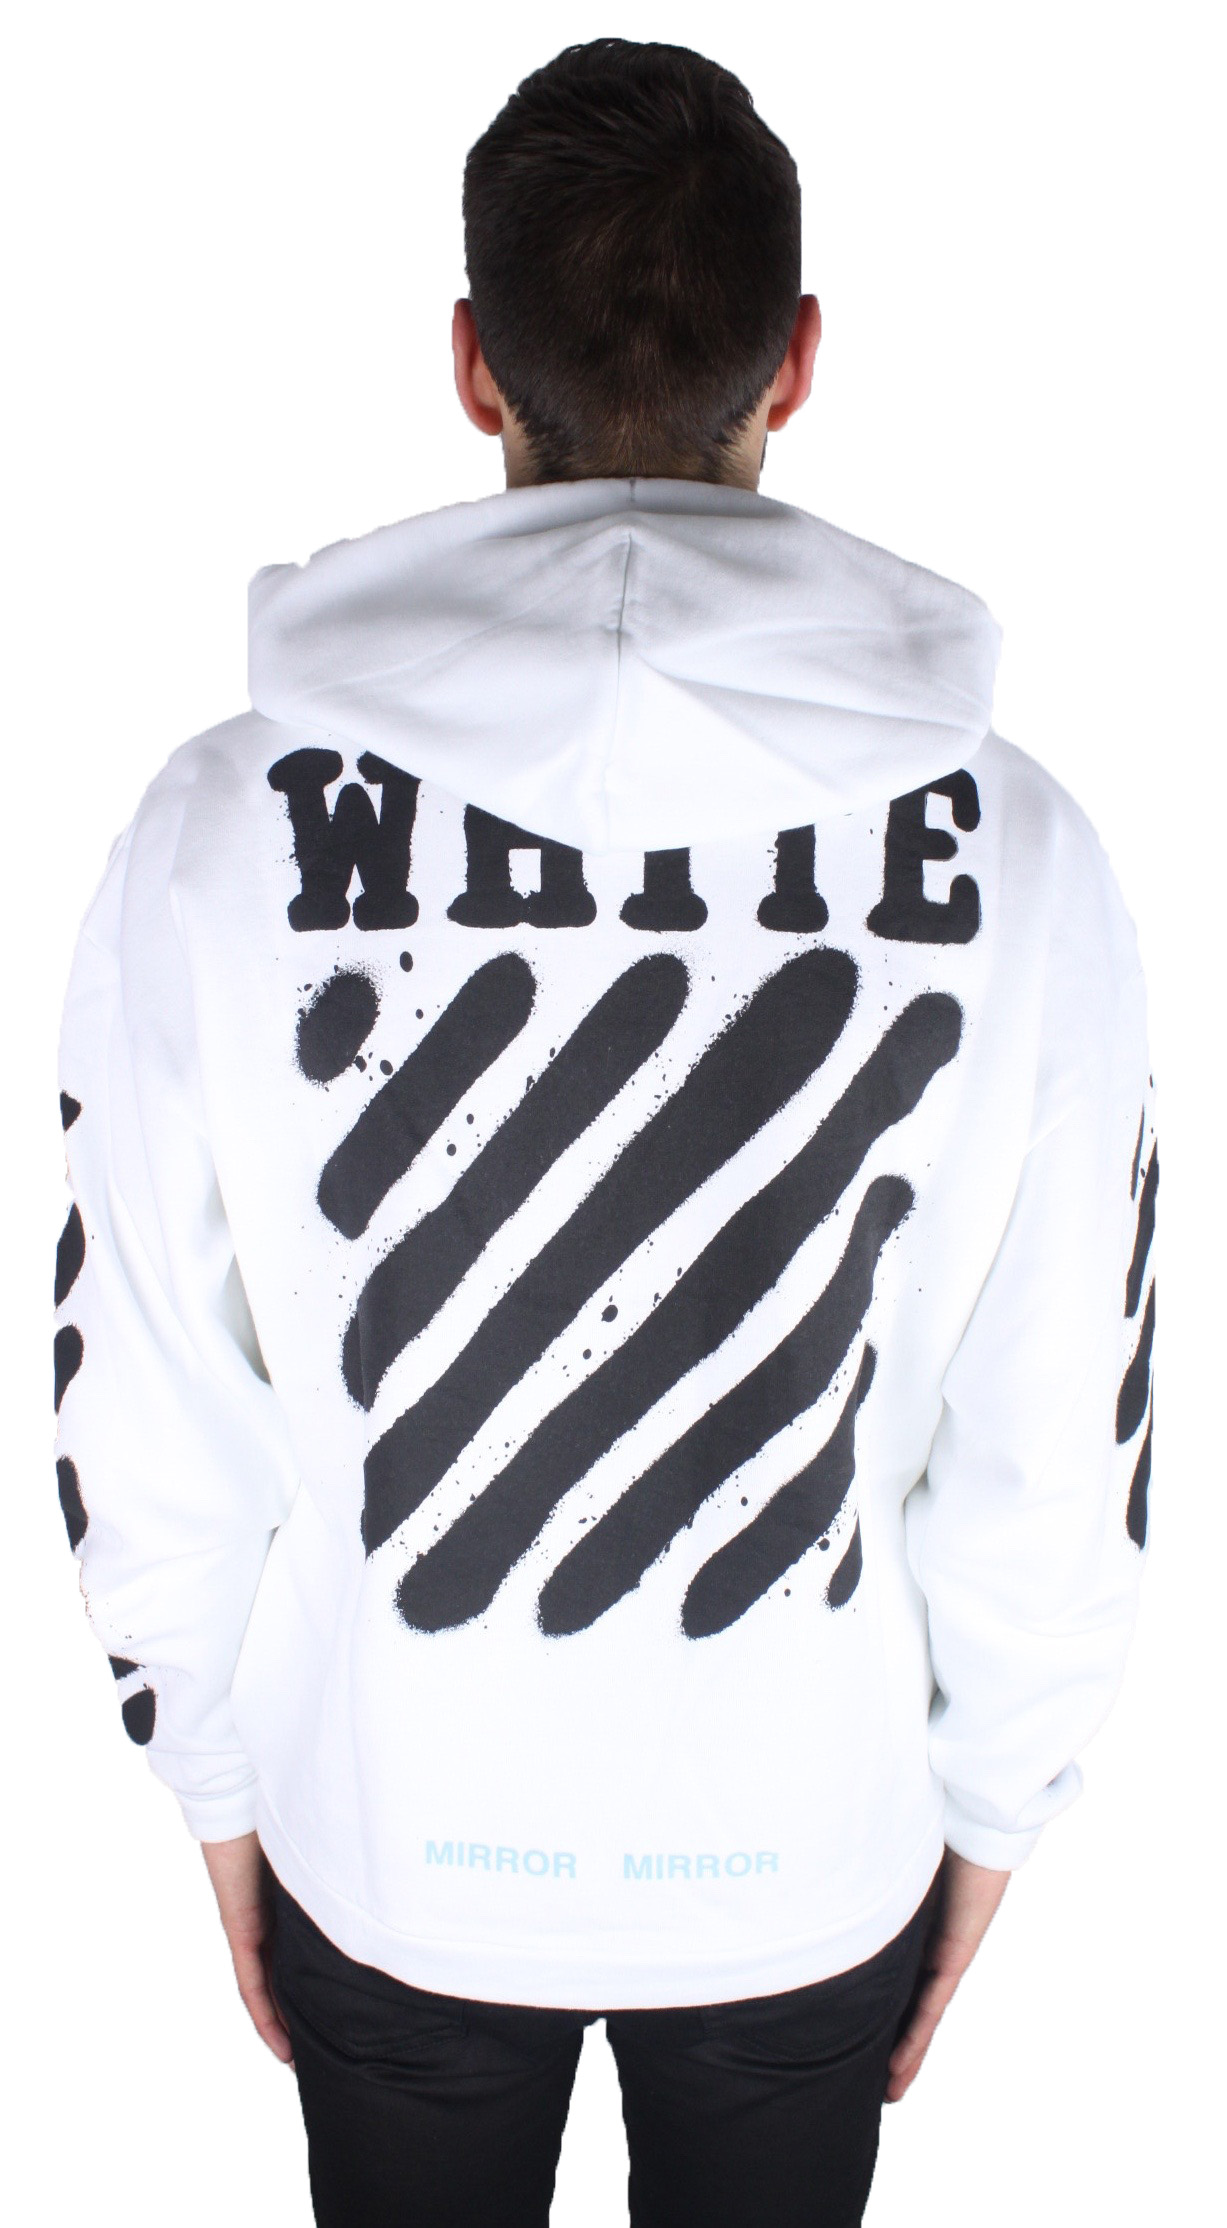 White Spray Hoodie Sale Classic Outlet With Mastercard From China Online Cheap Footaction Big Sale xulEXdy